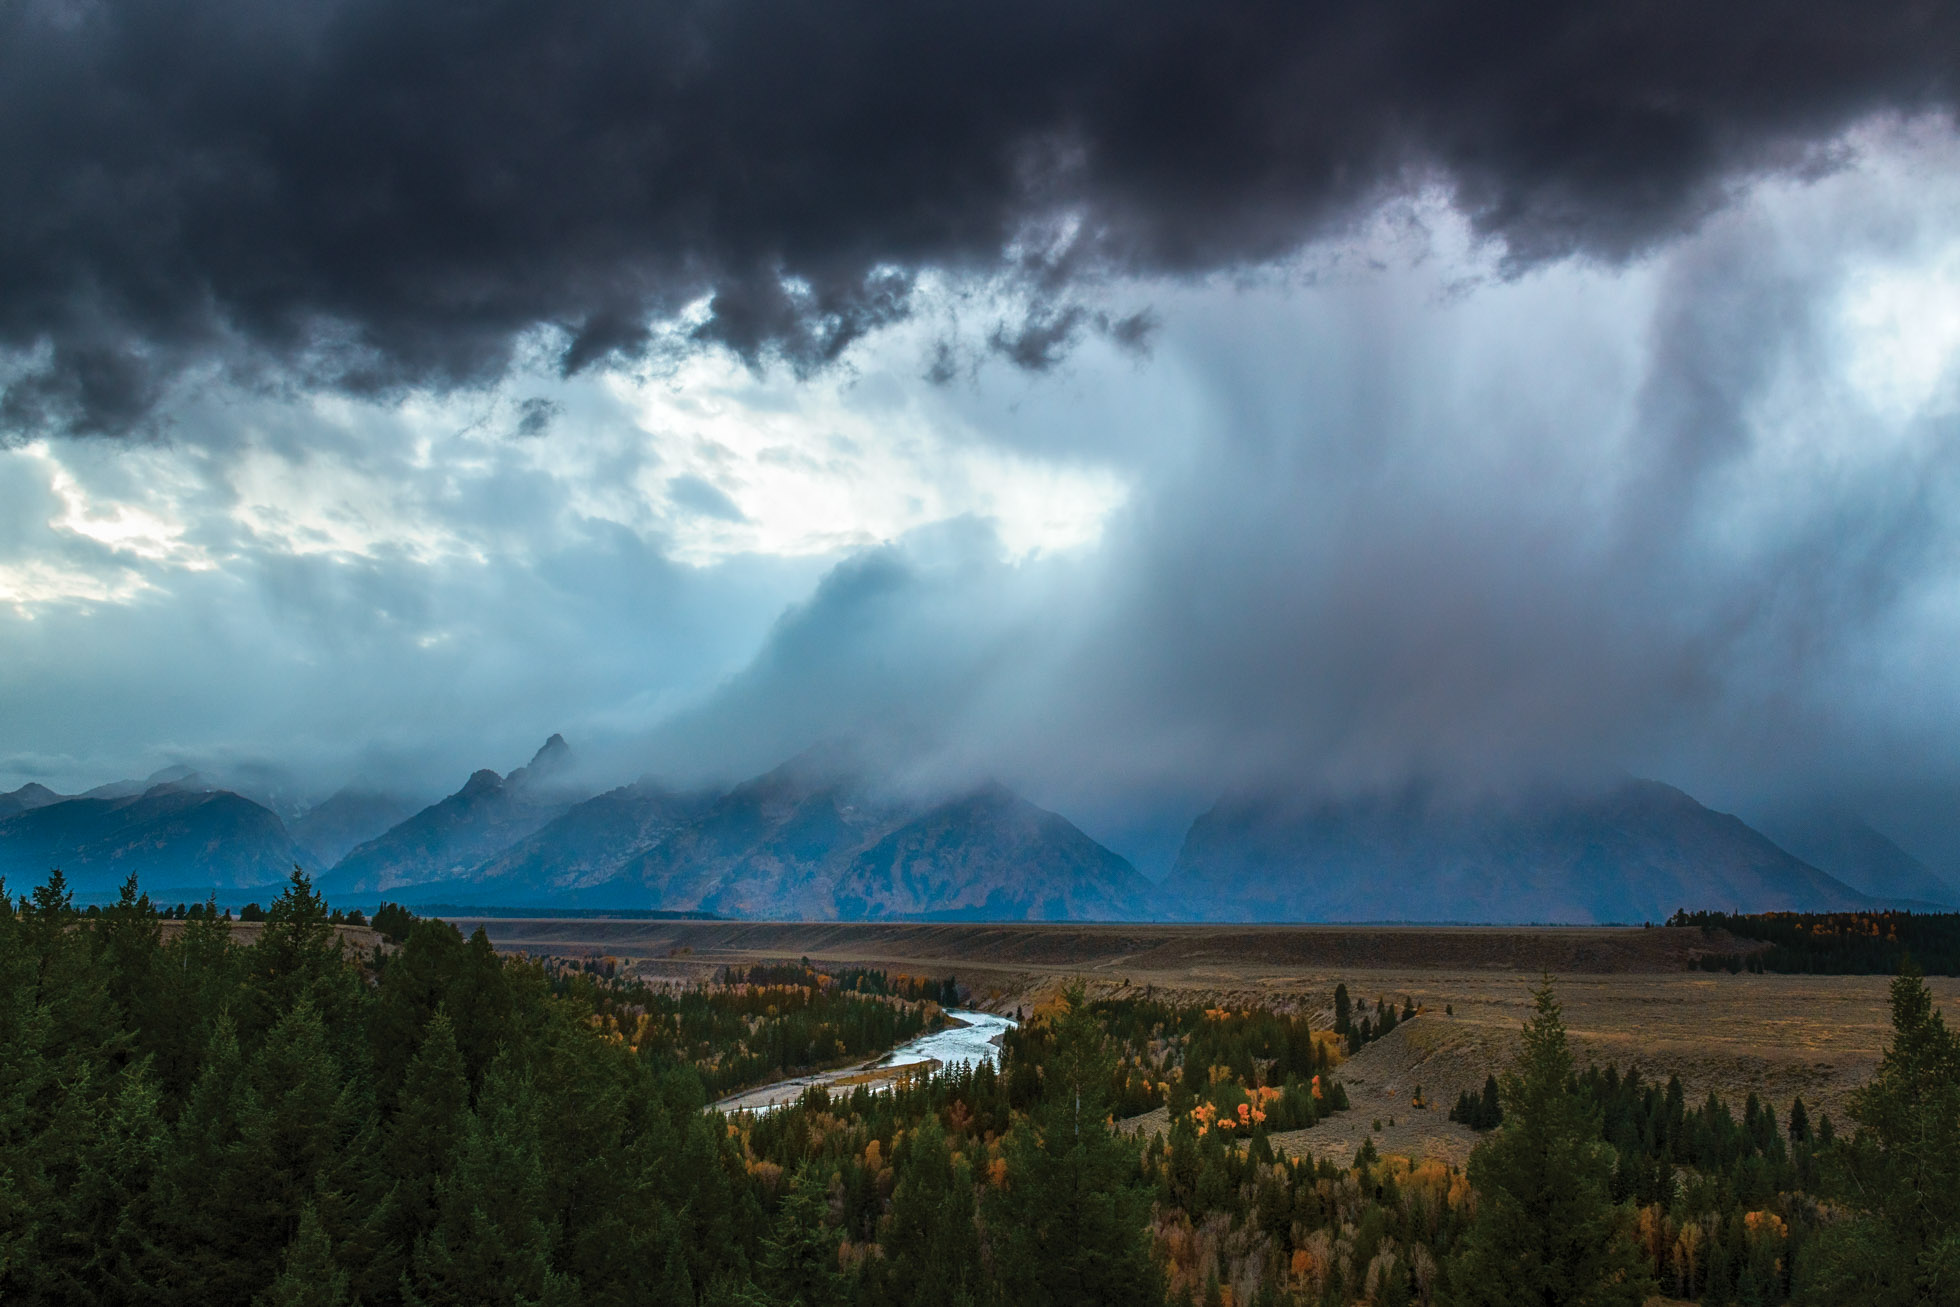 I love a dramatic sky and September's trip to Jackson Hole for the 2018 Magic in the Tetons retreat brought a couple days of stormy skies. This was captured during my final night during sunset.